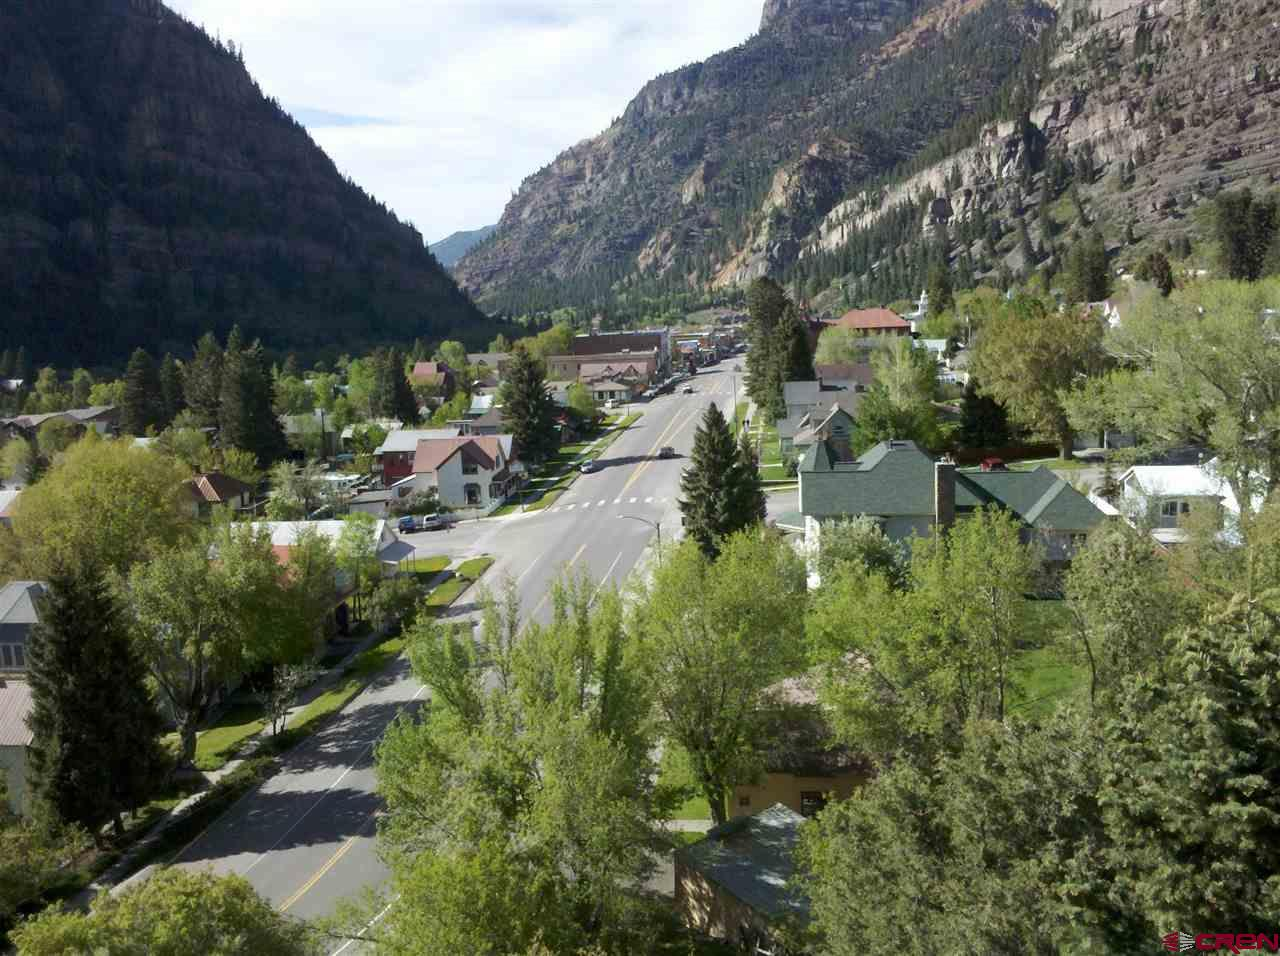 Build your dream home in the Colorado Mountains in Ouray! Phenomenal views over town down main street and up to the Amphitheater, Twin Peaks, and the surroundings. Lot is ready to go with all utilities. High speed fiber being installed in town. Make a change to a better lifestyle in a peaceful mountain town.